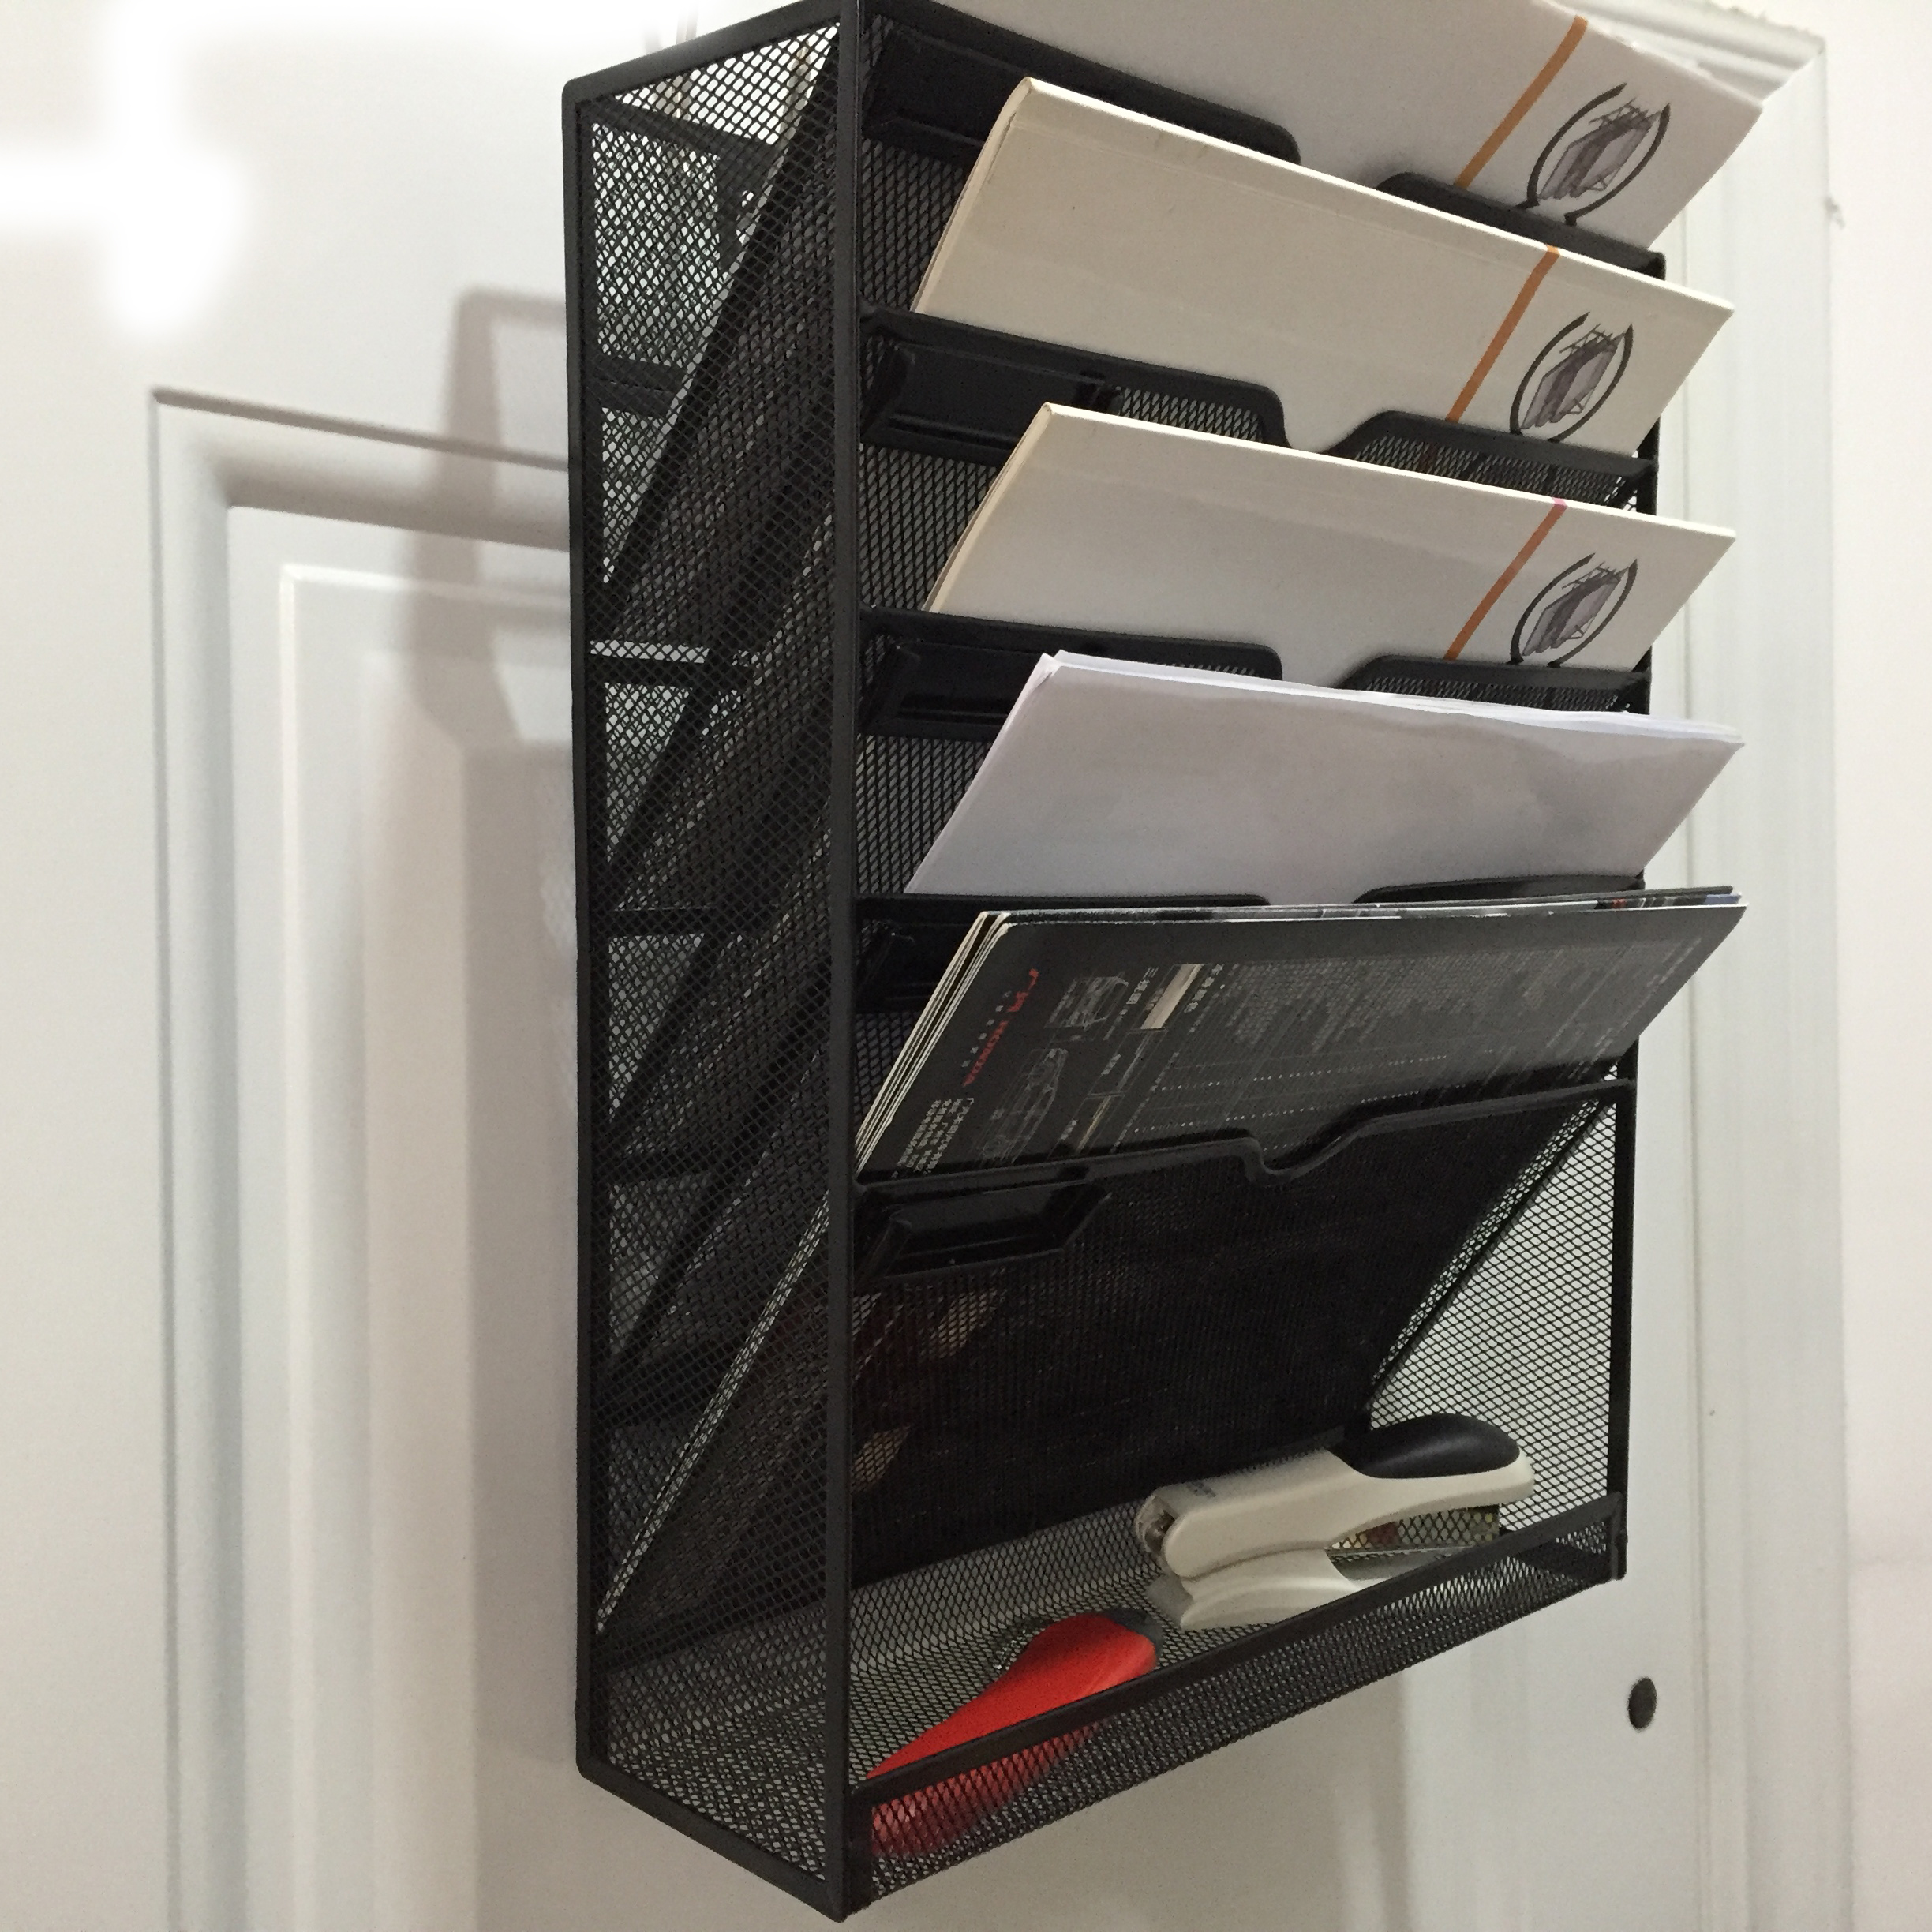 Office Supply 6 tier Metal Wire Mesh Wall Mounted Document Letter tray Organizer